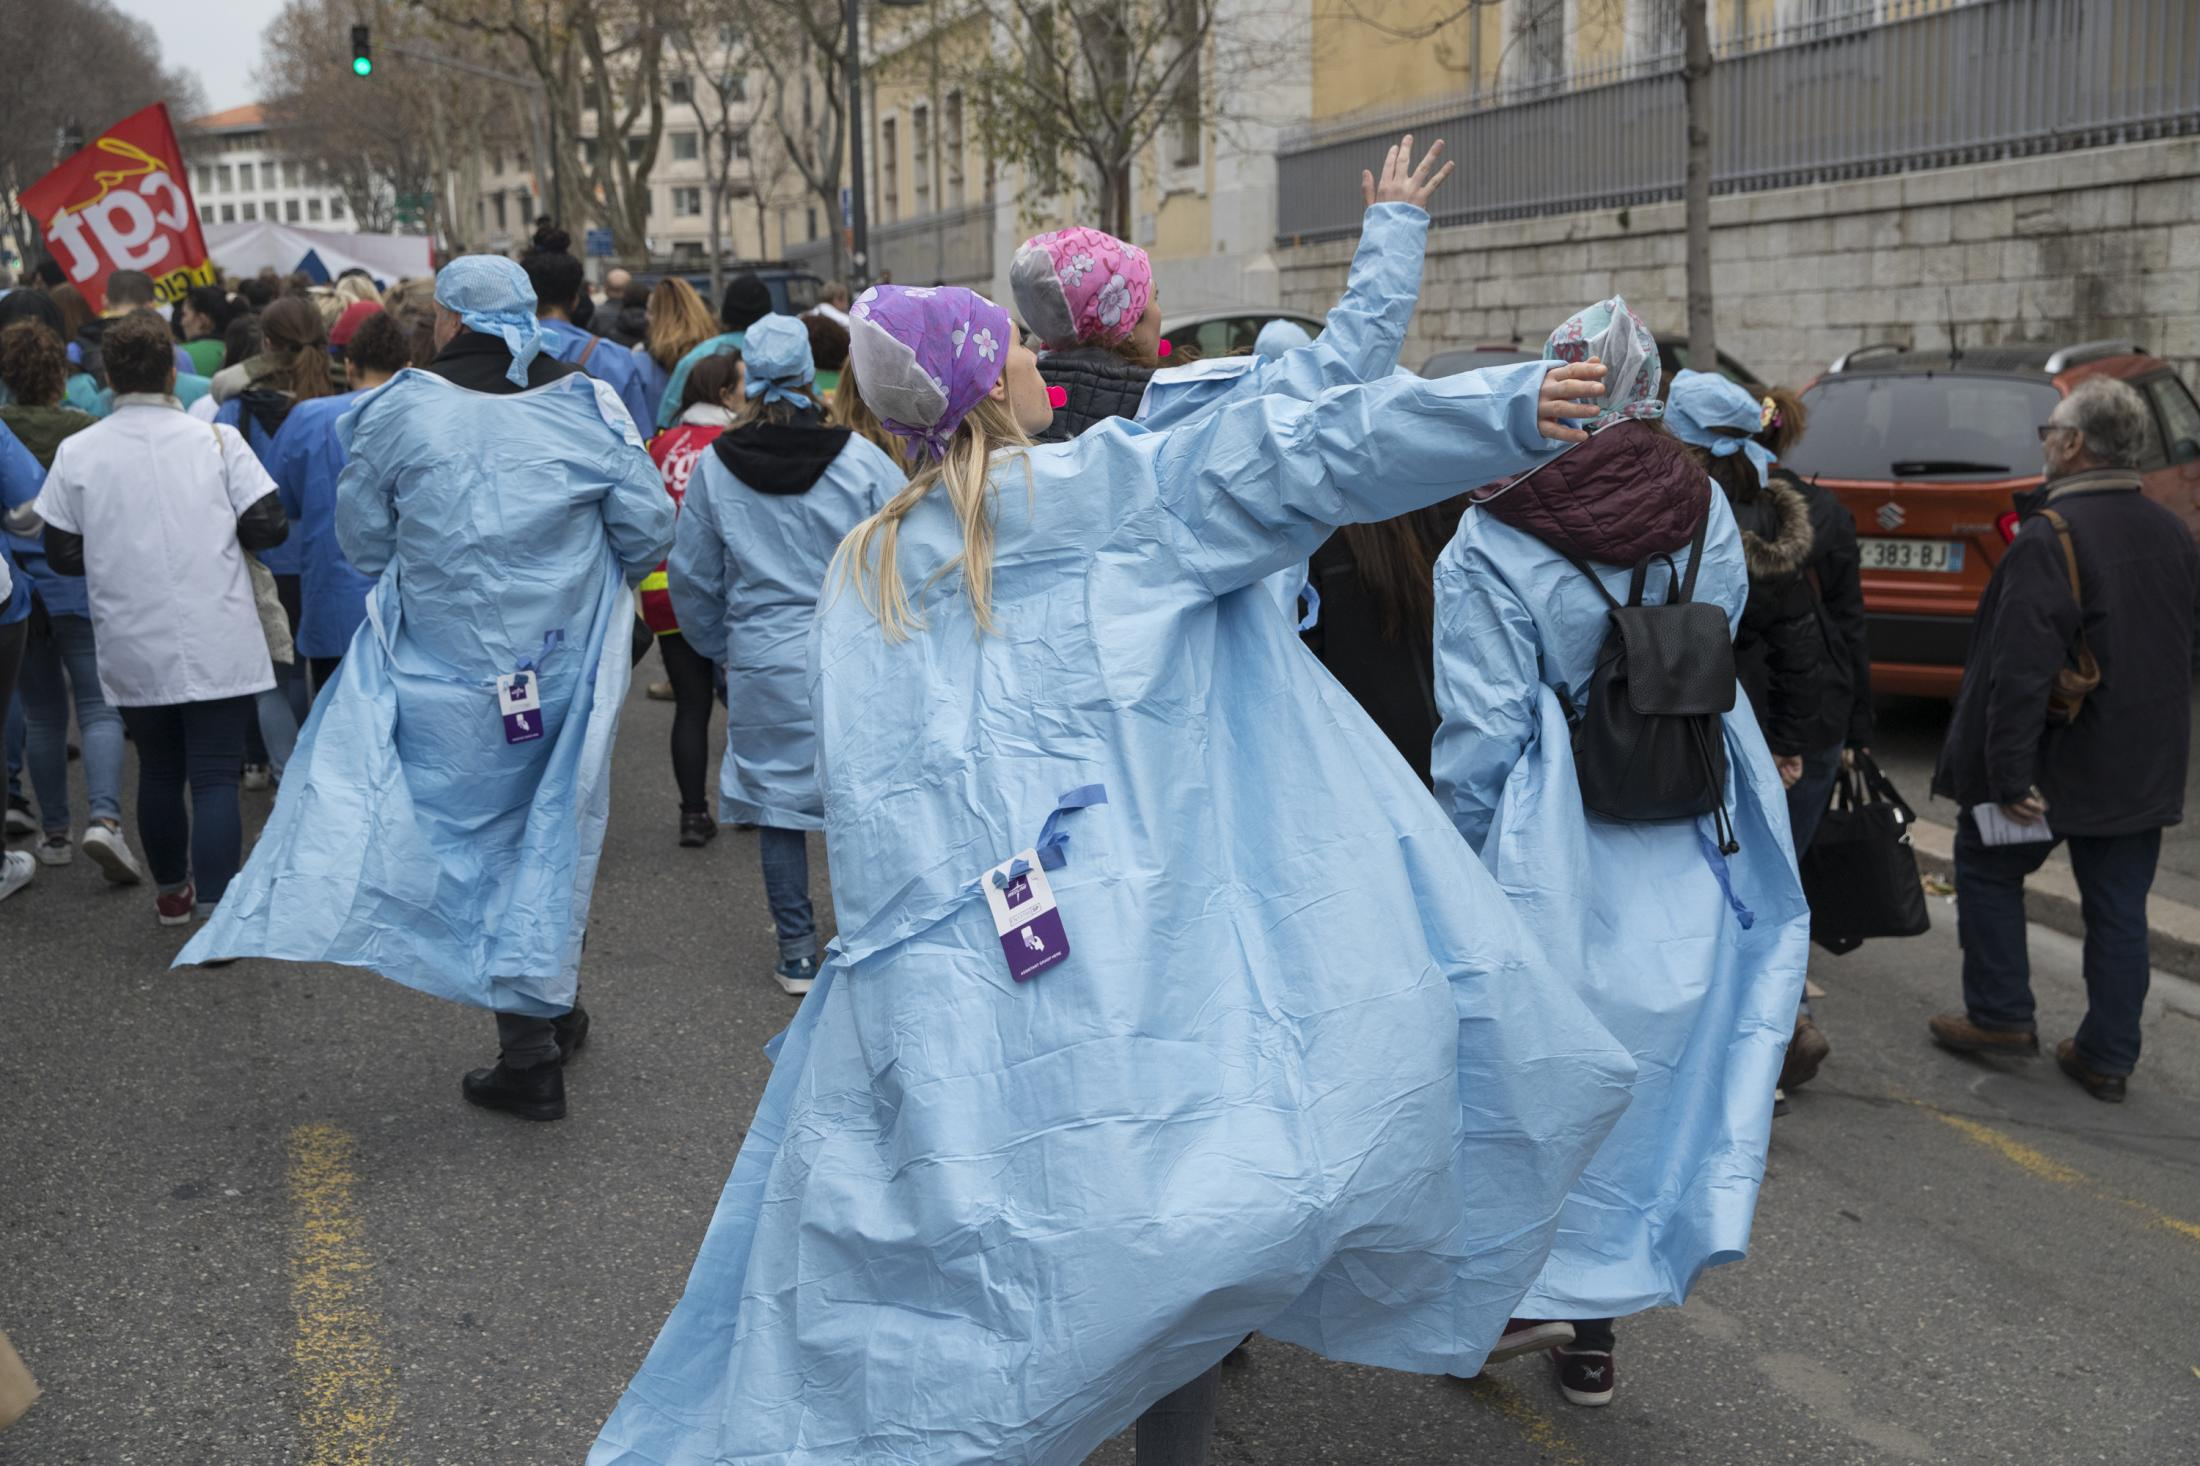 Hospital workers march in Marseille, southern France, Tuesday, Dec. 17, 2019.